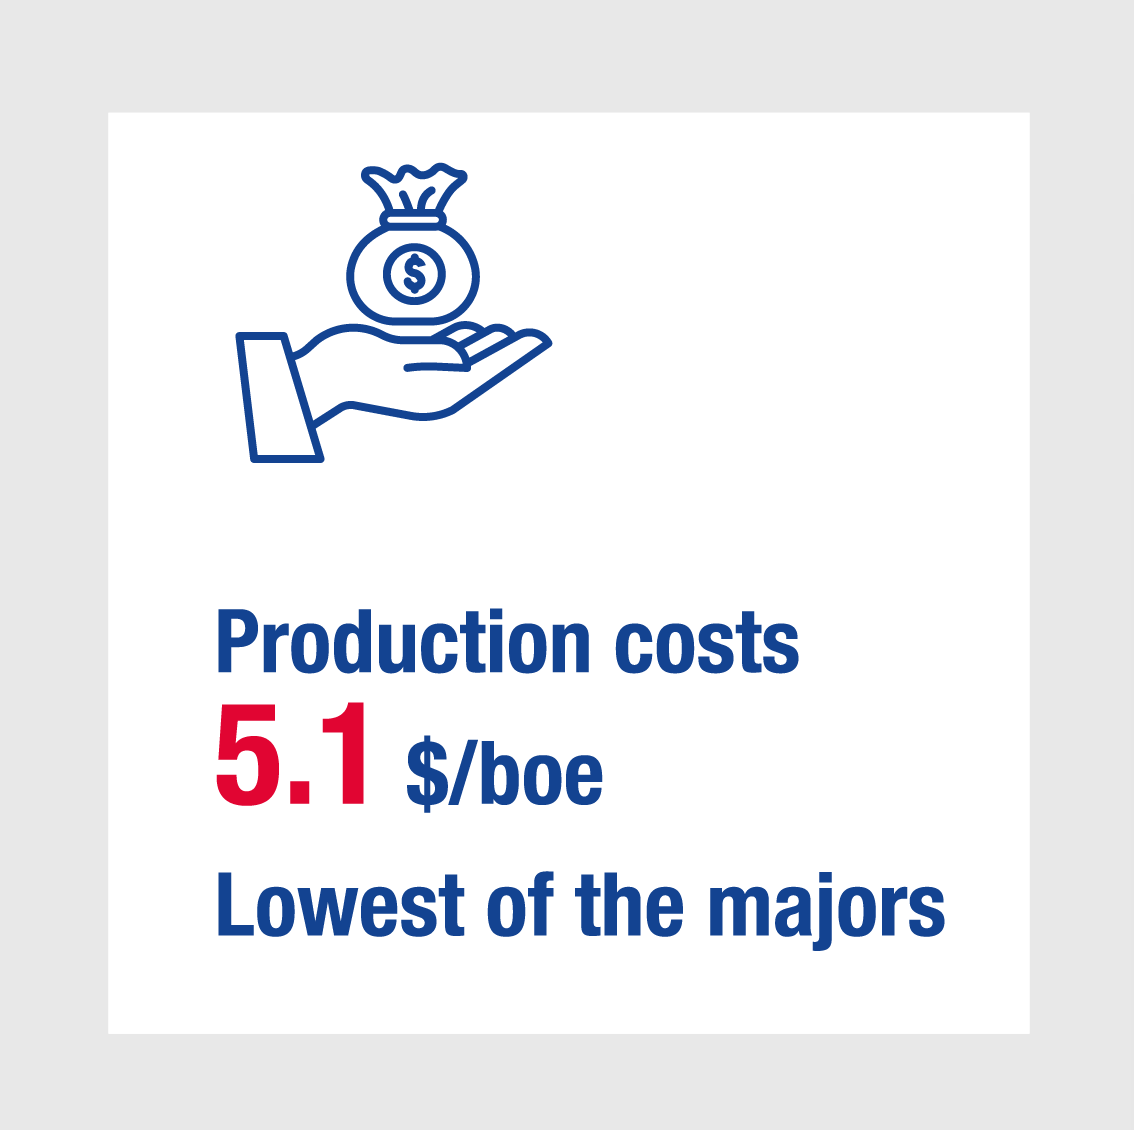 Production costs 5.1 $/boe Lowest of the majors